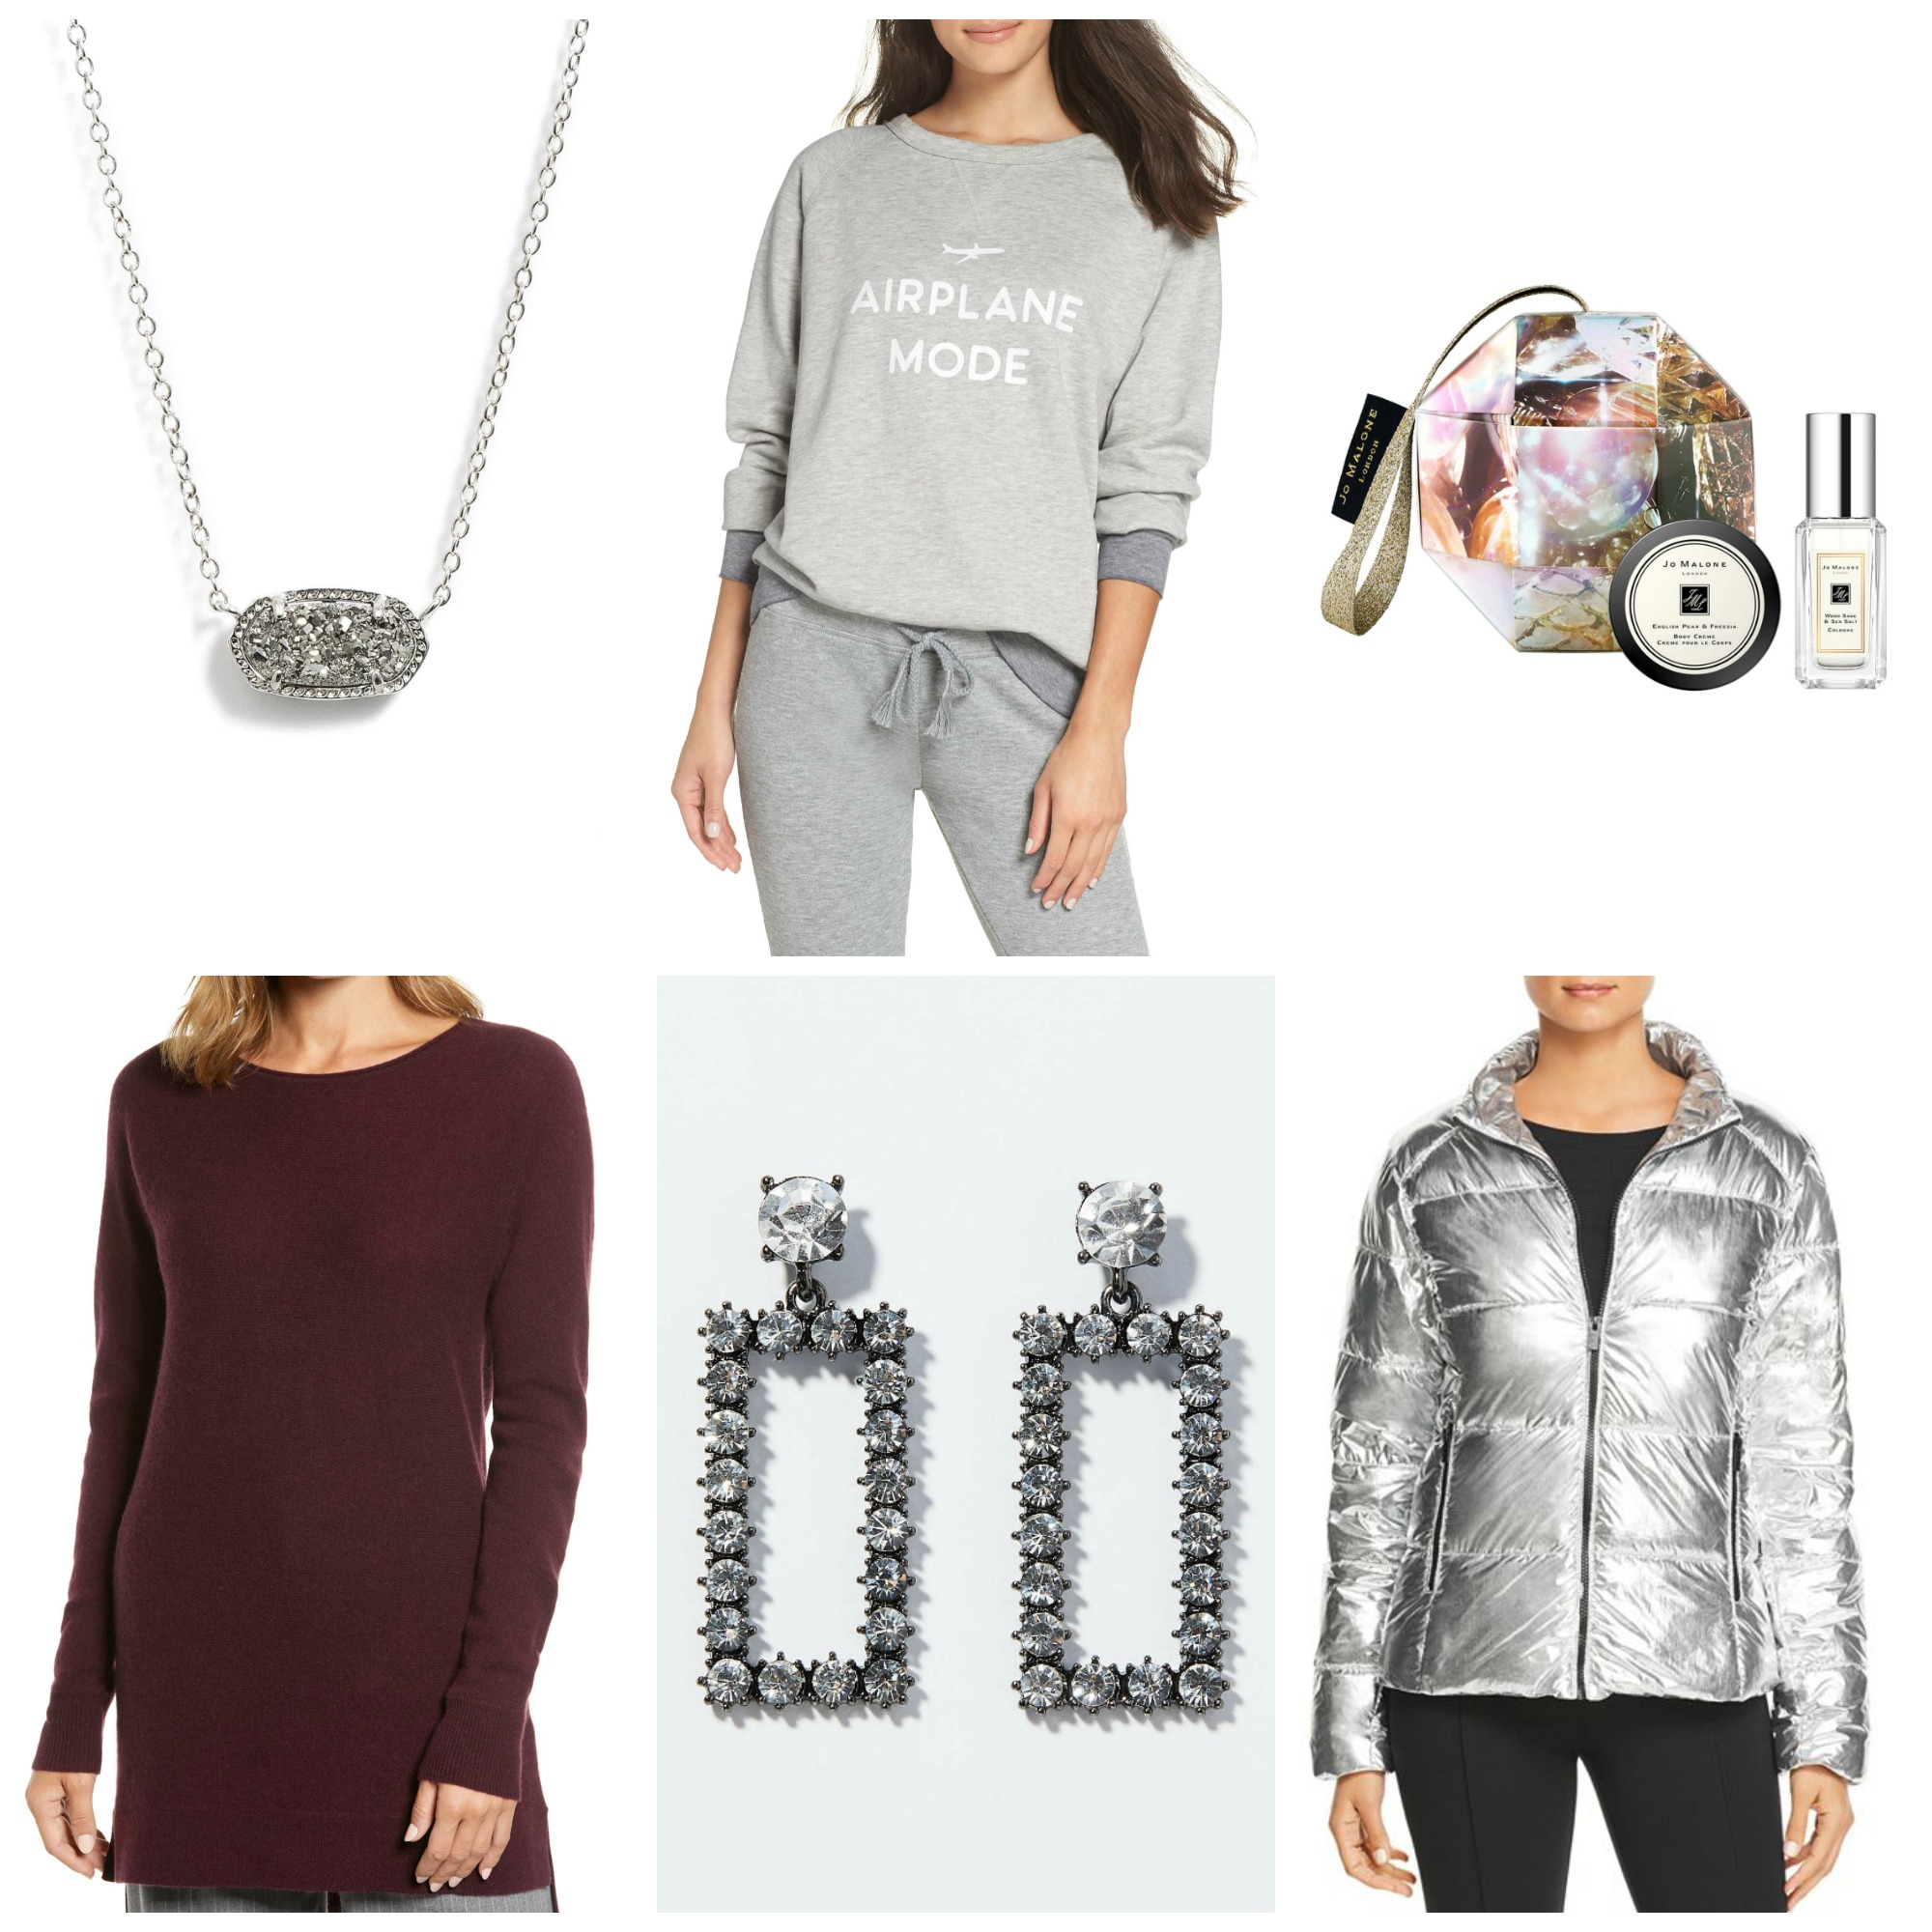 gifts for women over 40, stye blogger gift guide